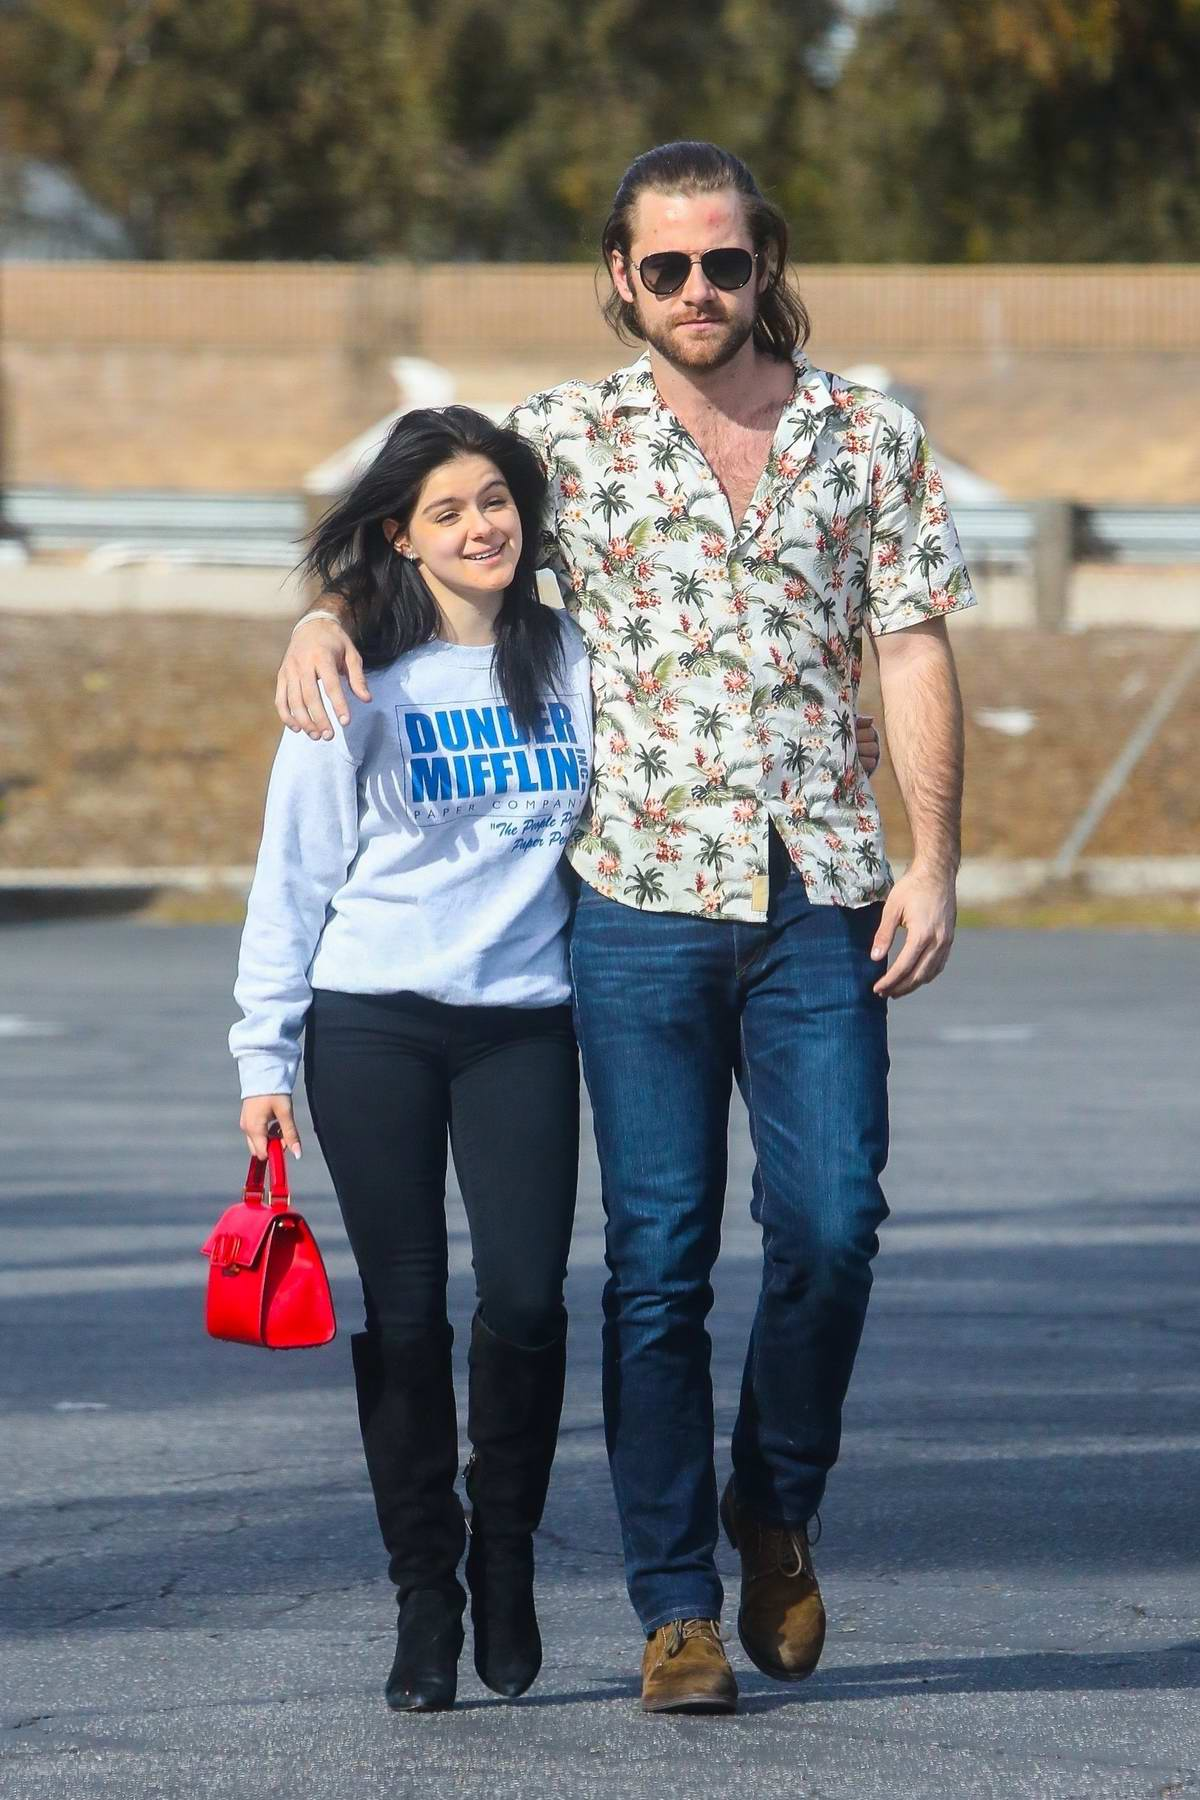 Ariel Winter and new boyfriend Luke Benward wrap their arms around each other during a lunch date at Patys Restaurant in Los Angeles